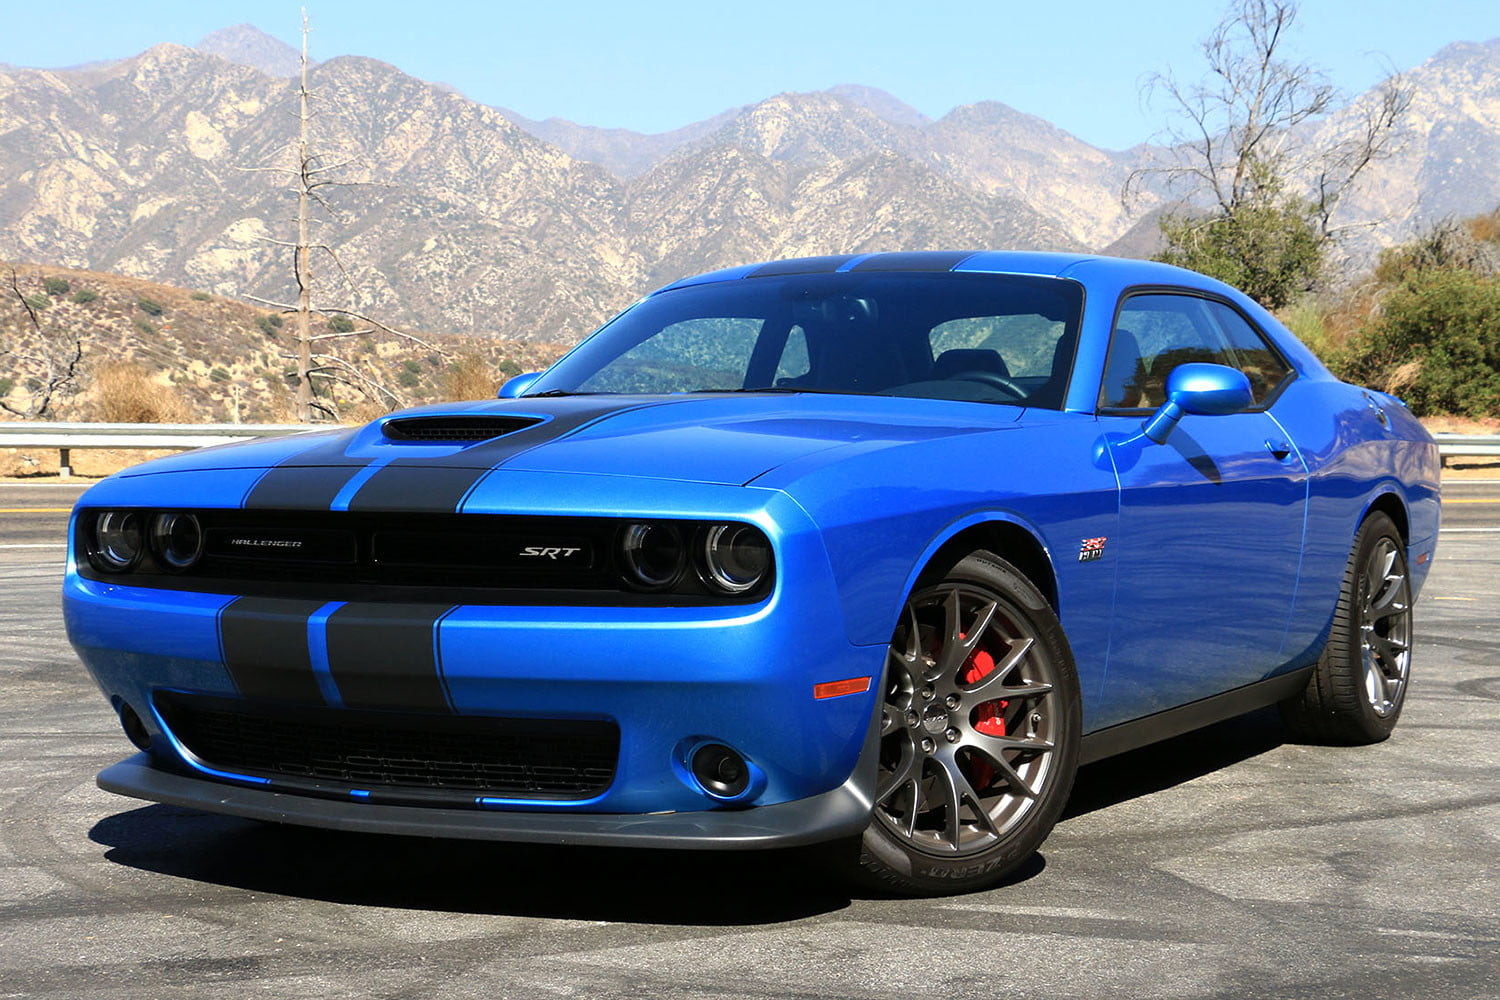 2017 Dodge Challenger Srt 392 Review Specs Performance Digital Trends